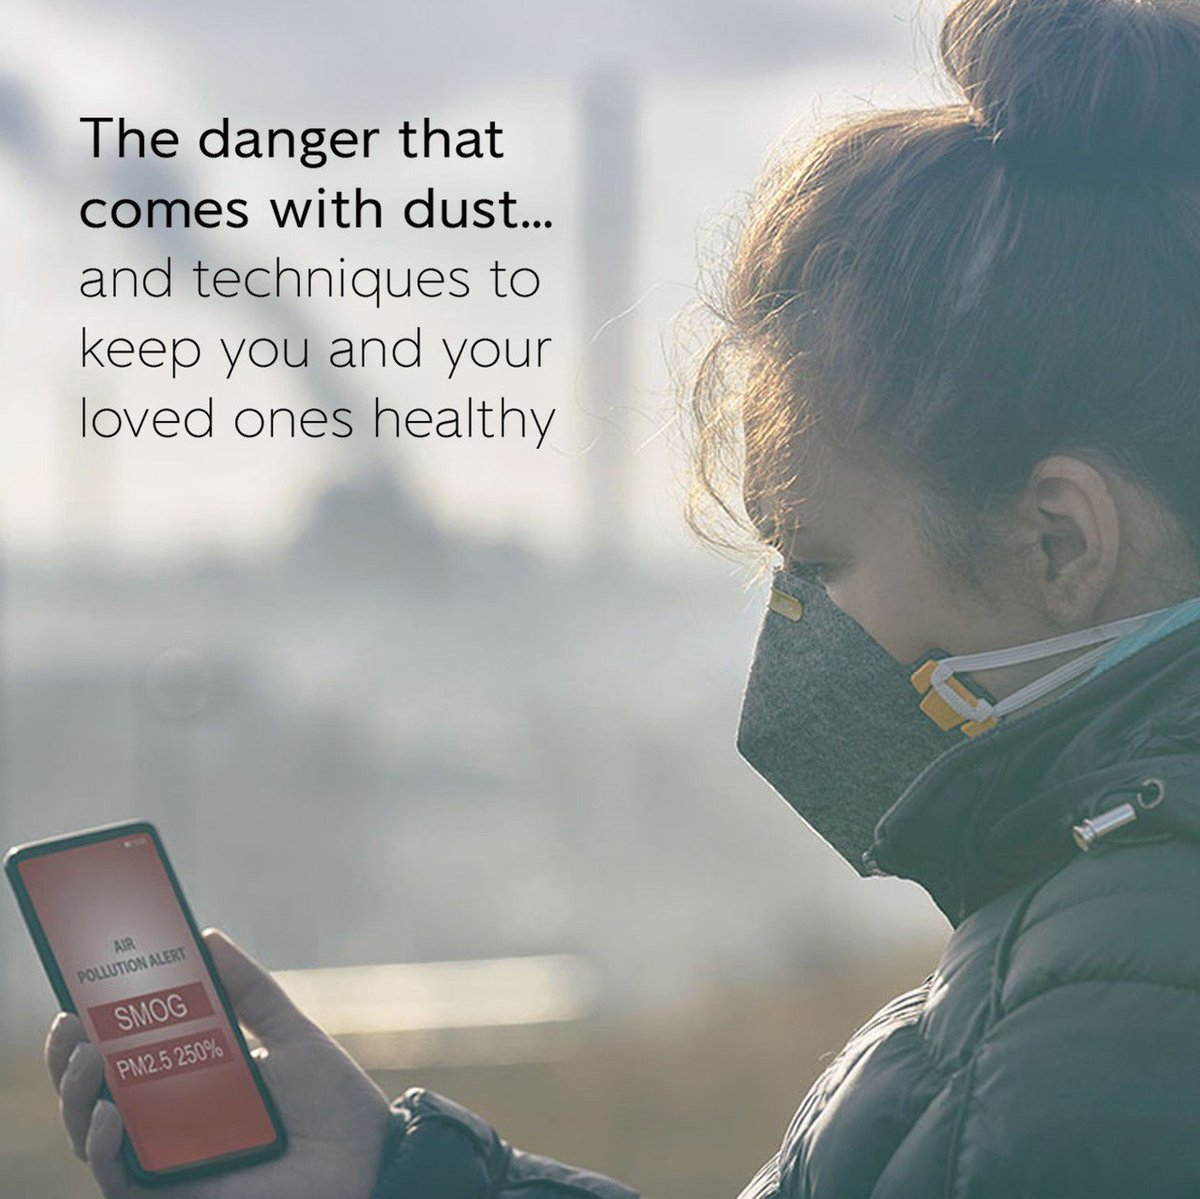 You can't always avoid PM2.5, but you can choose to protect yourself and your loved ones with...find your answer here http://wu.to/rhd4Of #UnileverNetwork #MaquiPlus #UVExpert #SunProtector #Gluta #PM2.5 #InvisibleThreats #HealthyImmunity